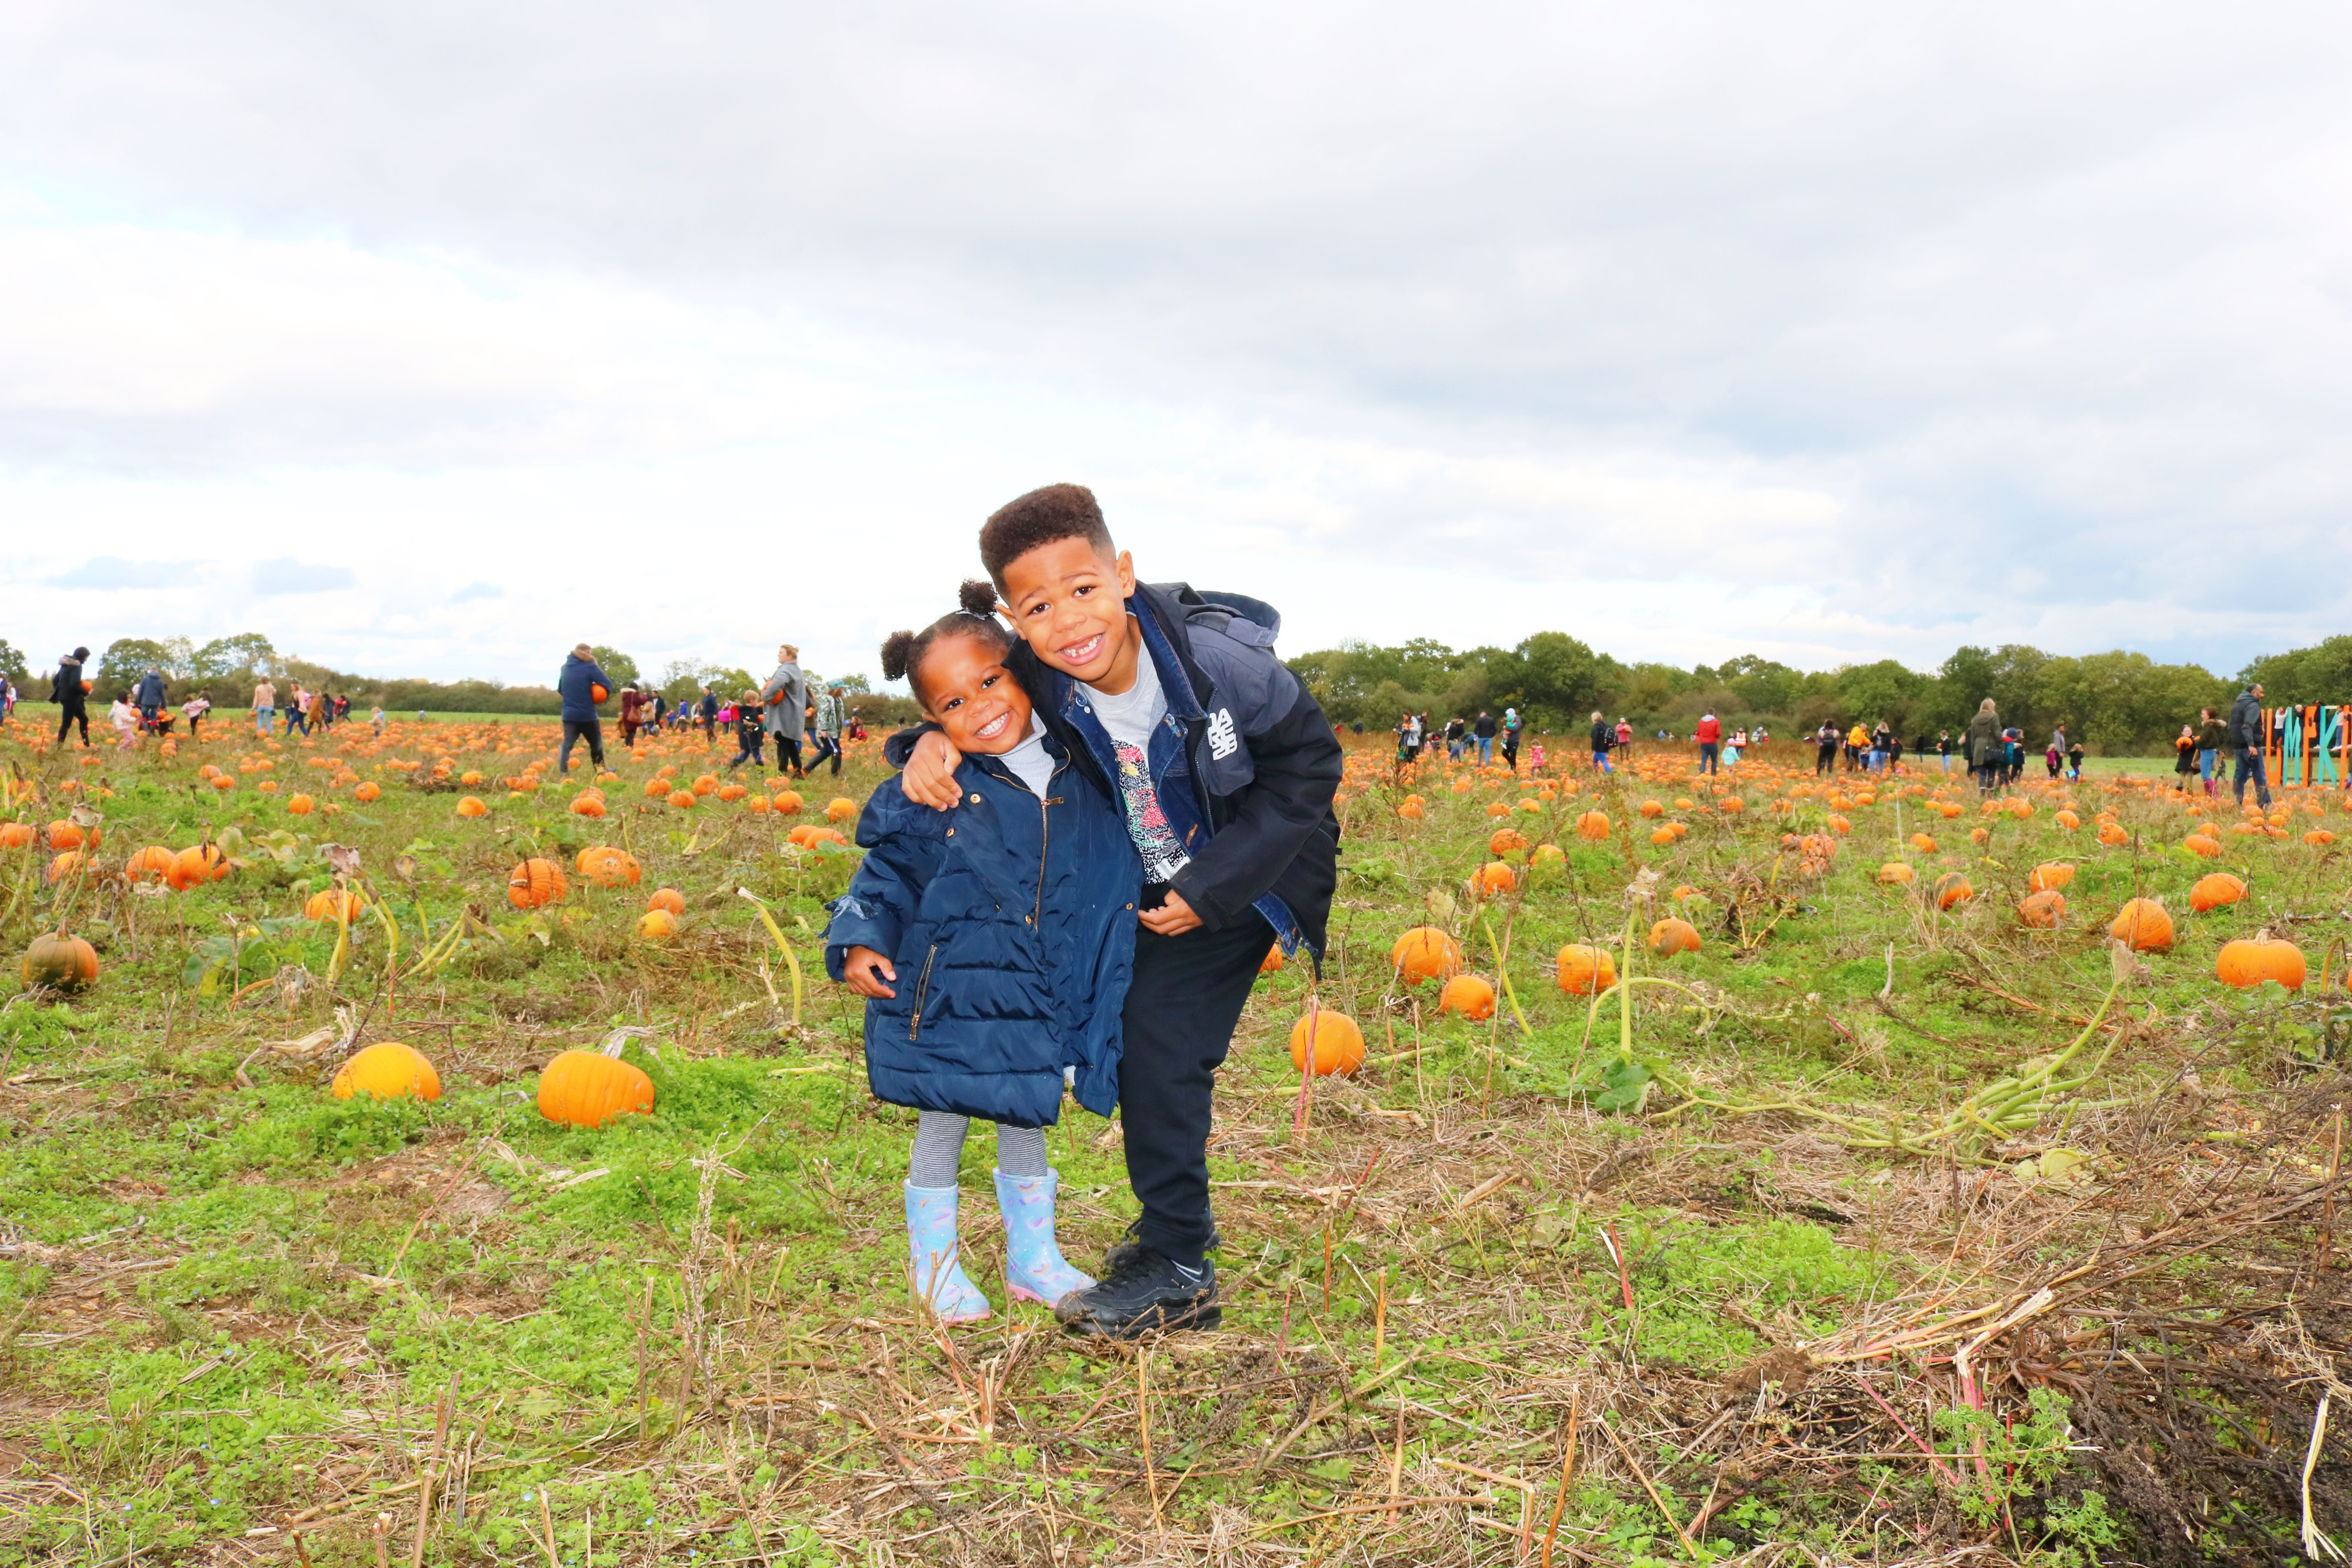 Pumpkin Picking | Fun With The Kids At The Pumpkin Patch MK